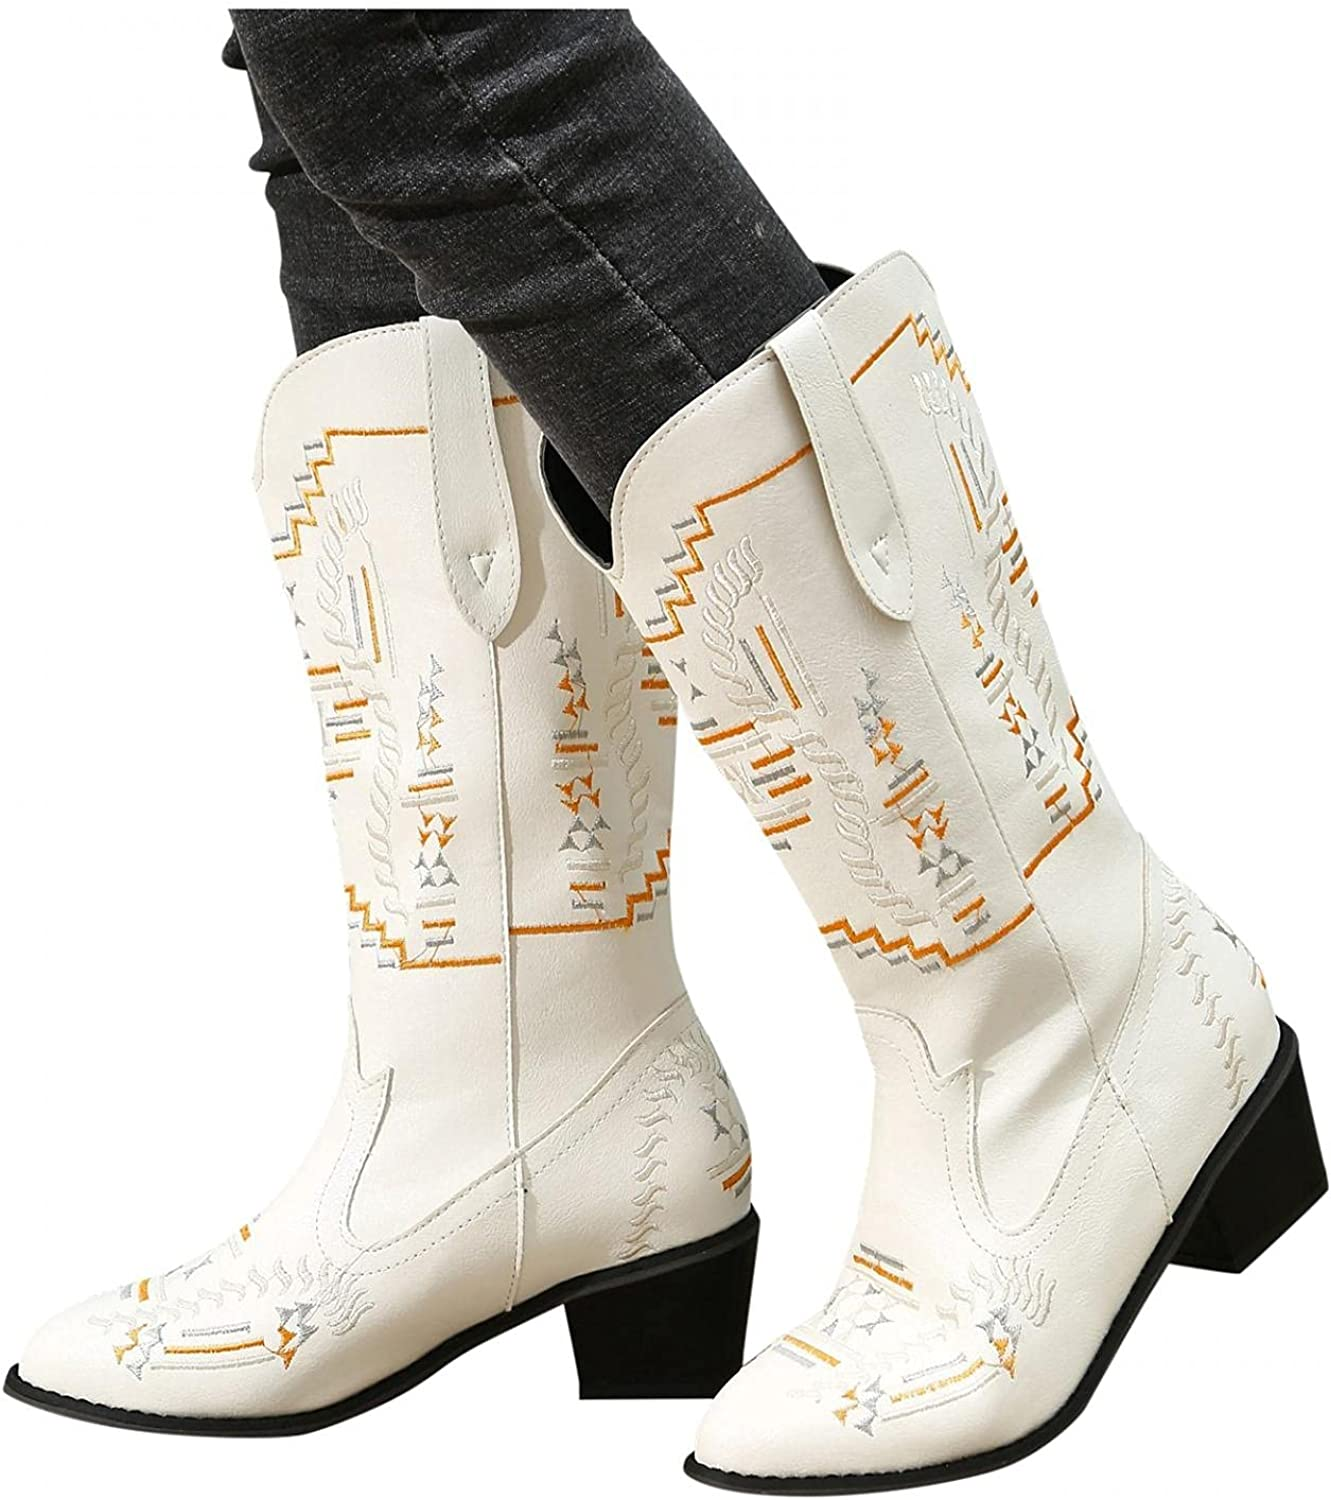 Cowboy Boots for Women Western Mid Calf Boots Cowgirl Western Low Heel Vintage Embroidered Cowgirl Boots Slip-on Shoes